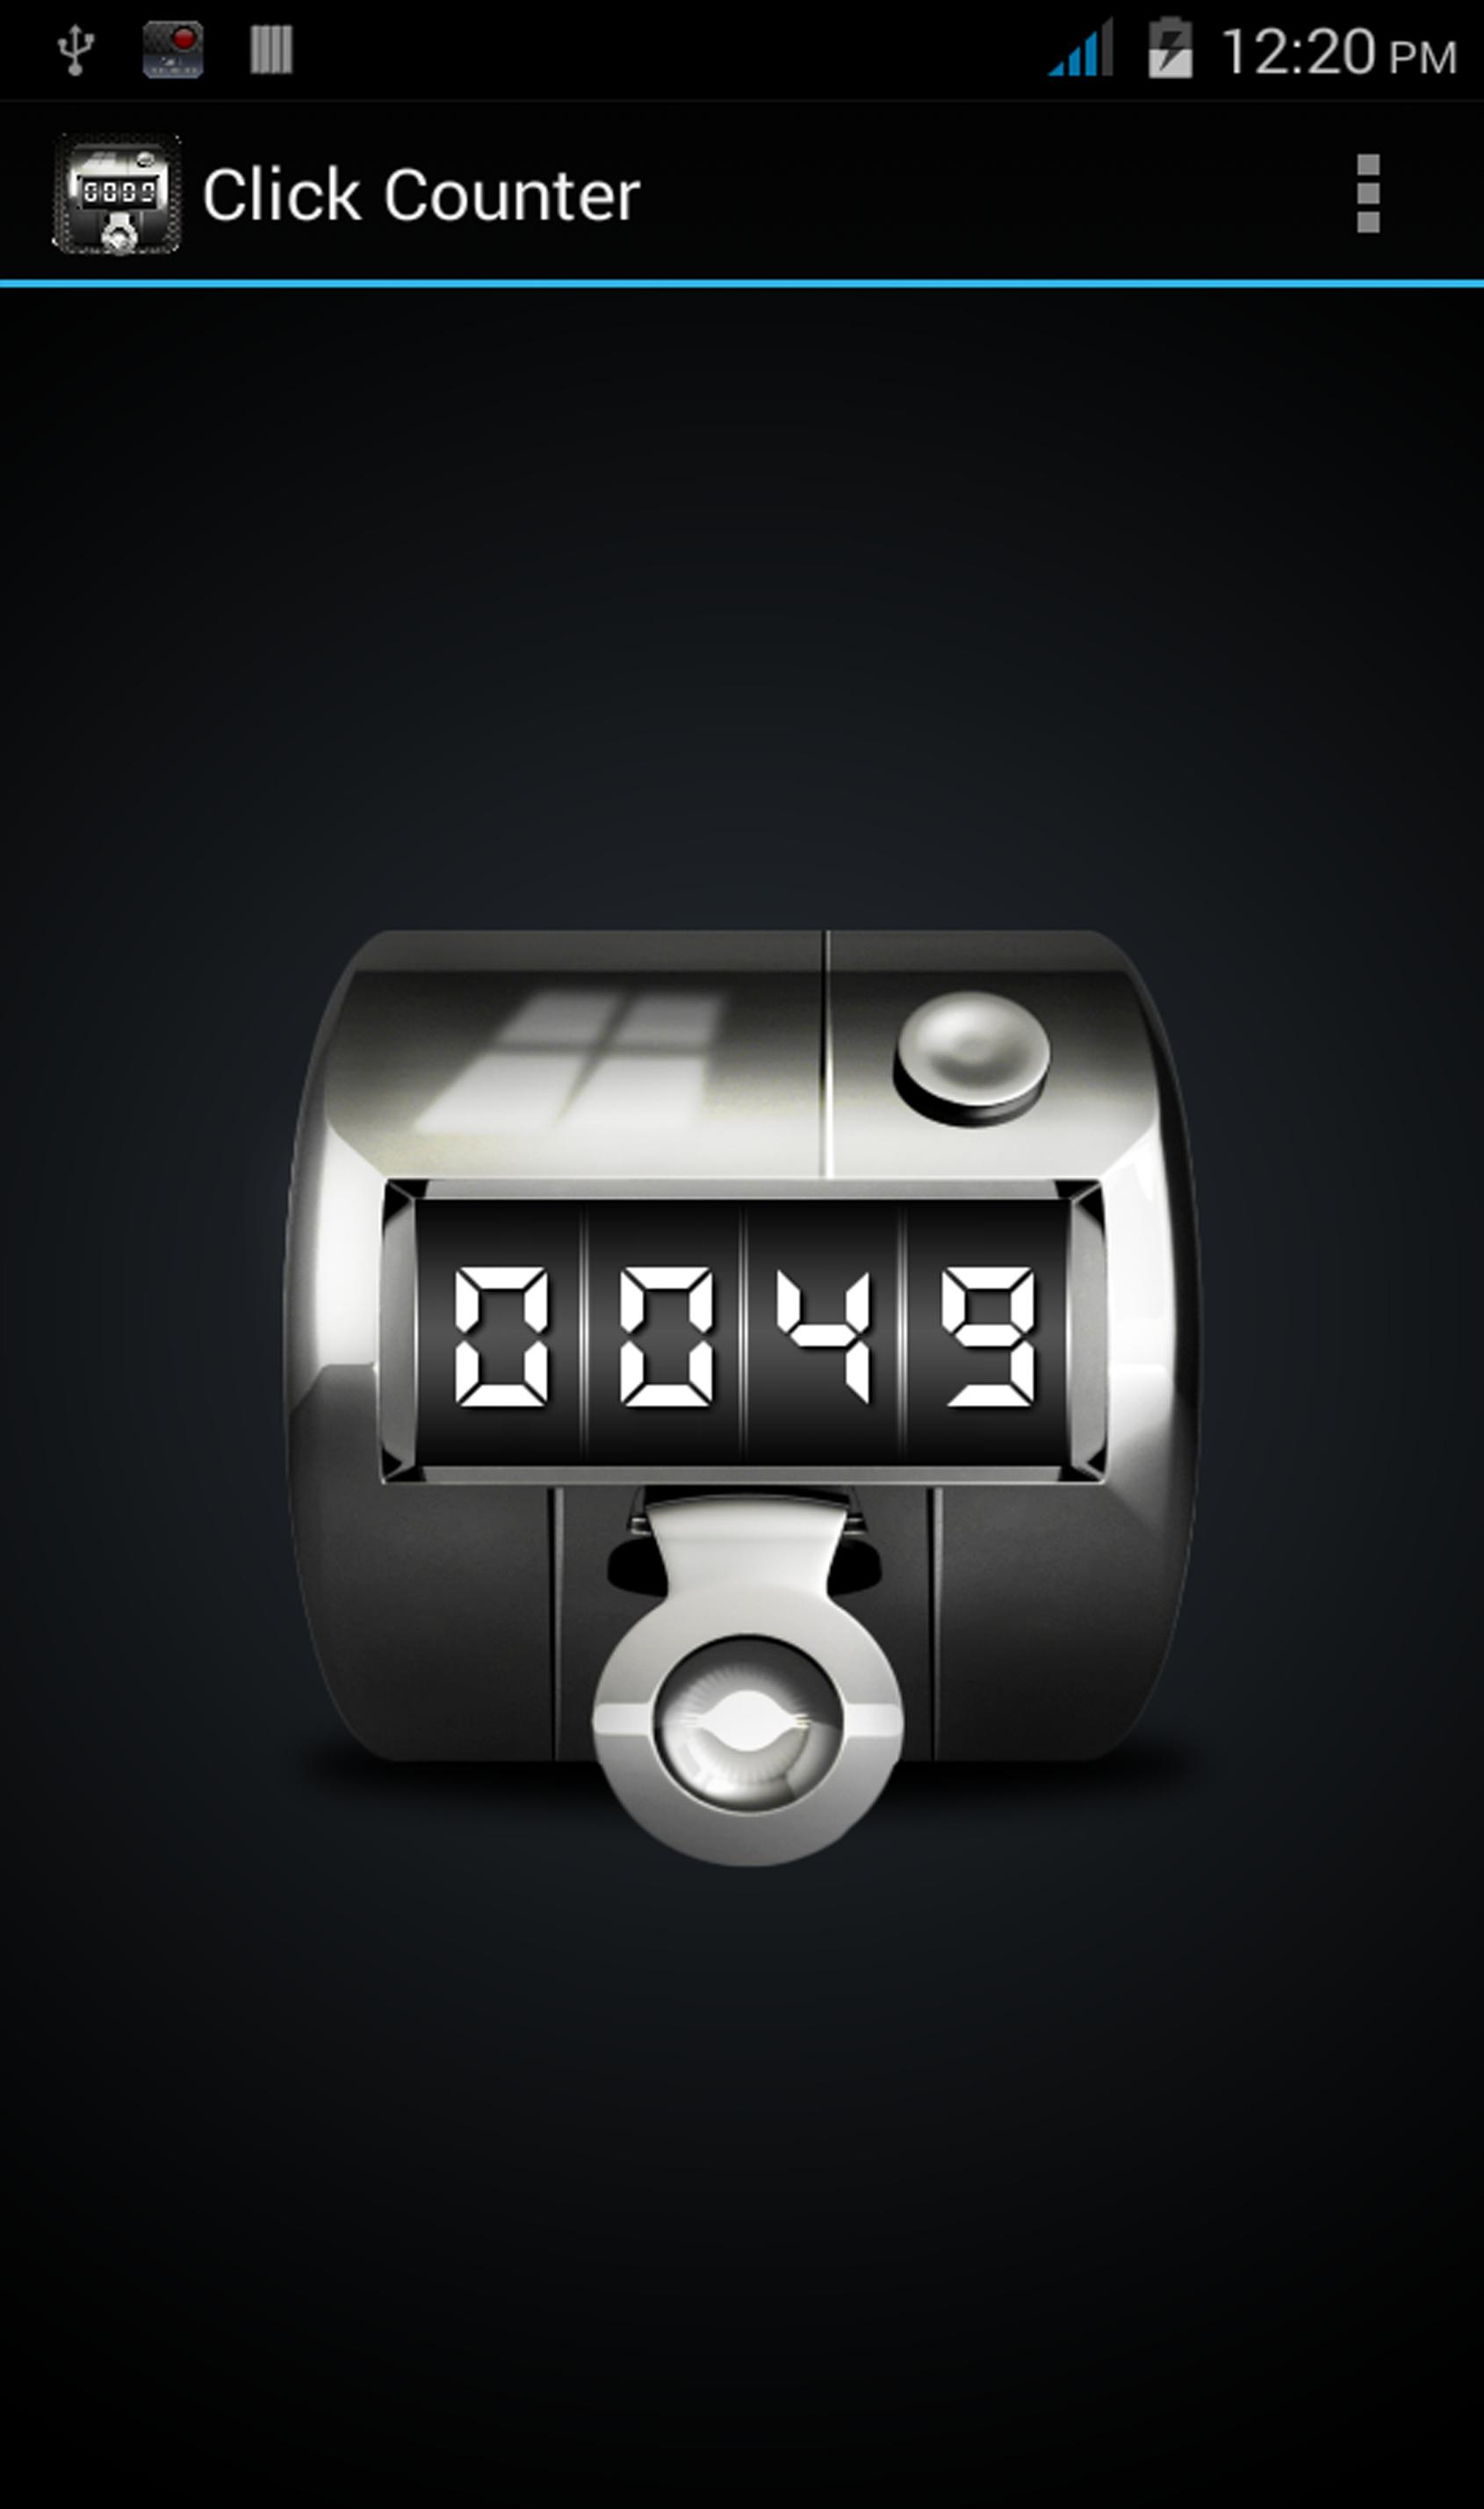 Click Counter for Android - APK Download